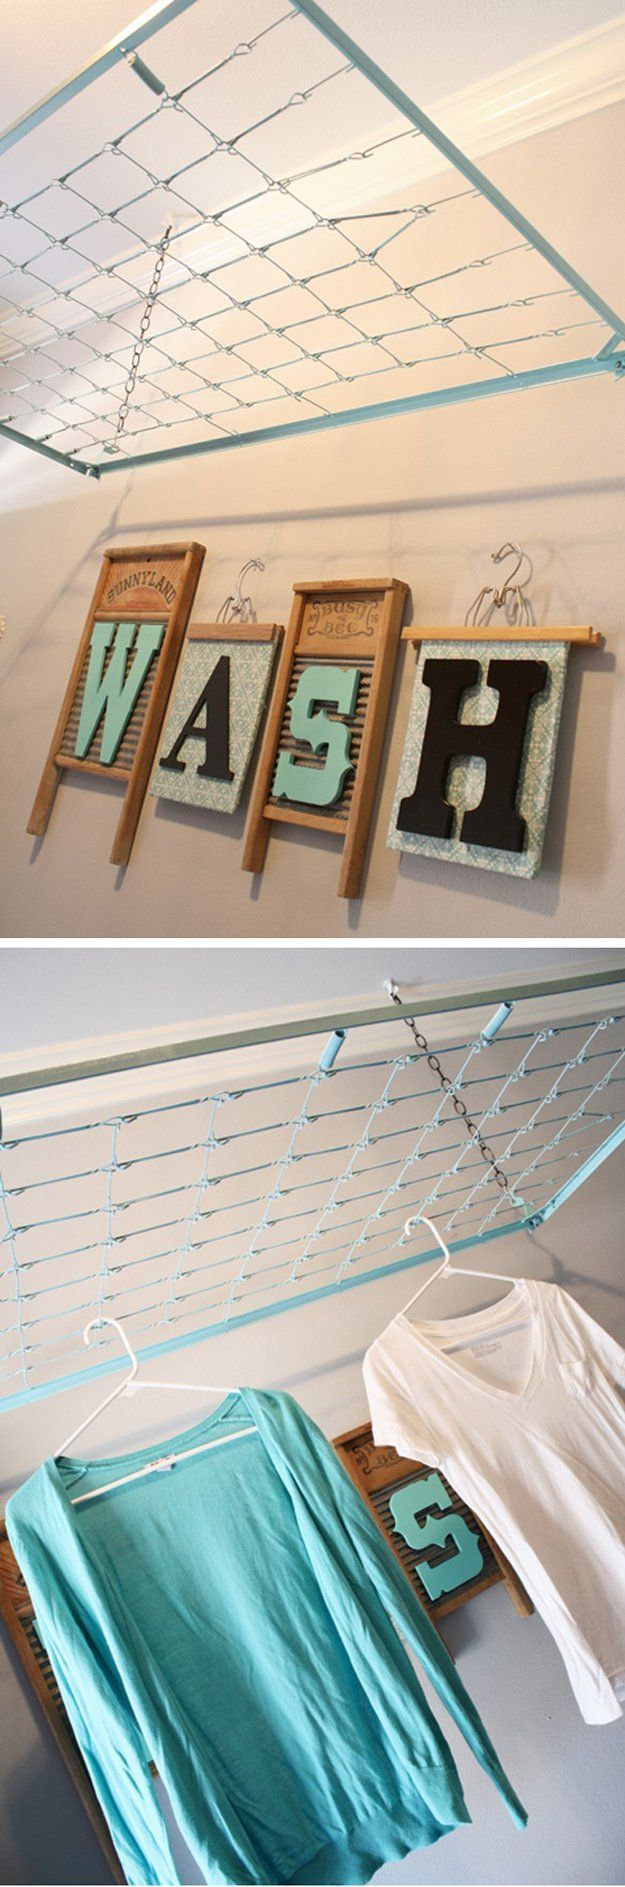 DIY Organization Ideas for Your Laundry Room DIYReady.com | Easy DIY Crafts, Fun Projects, & DIY Craft Ideas For Kids & Adults (scheduled via http://www.tailwindapp.com?utm_source=pinterest&utm_medium=twpin&utm_content=post32520816&utm_campaign=scheduler_attribution)